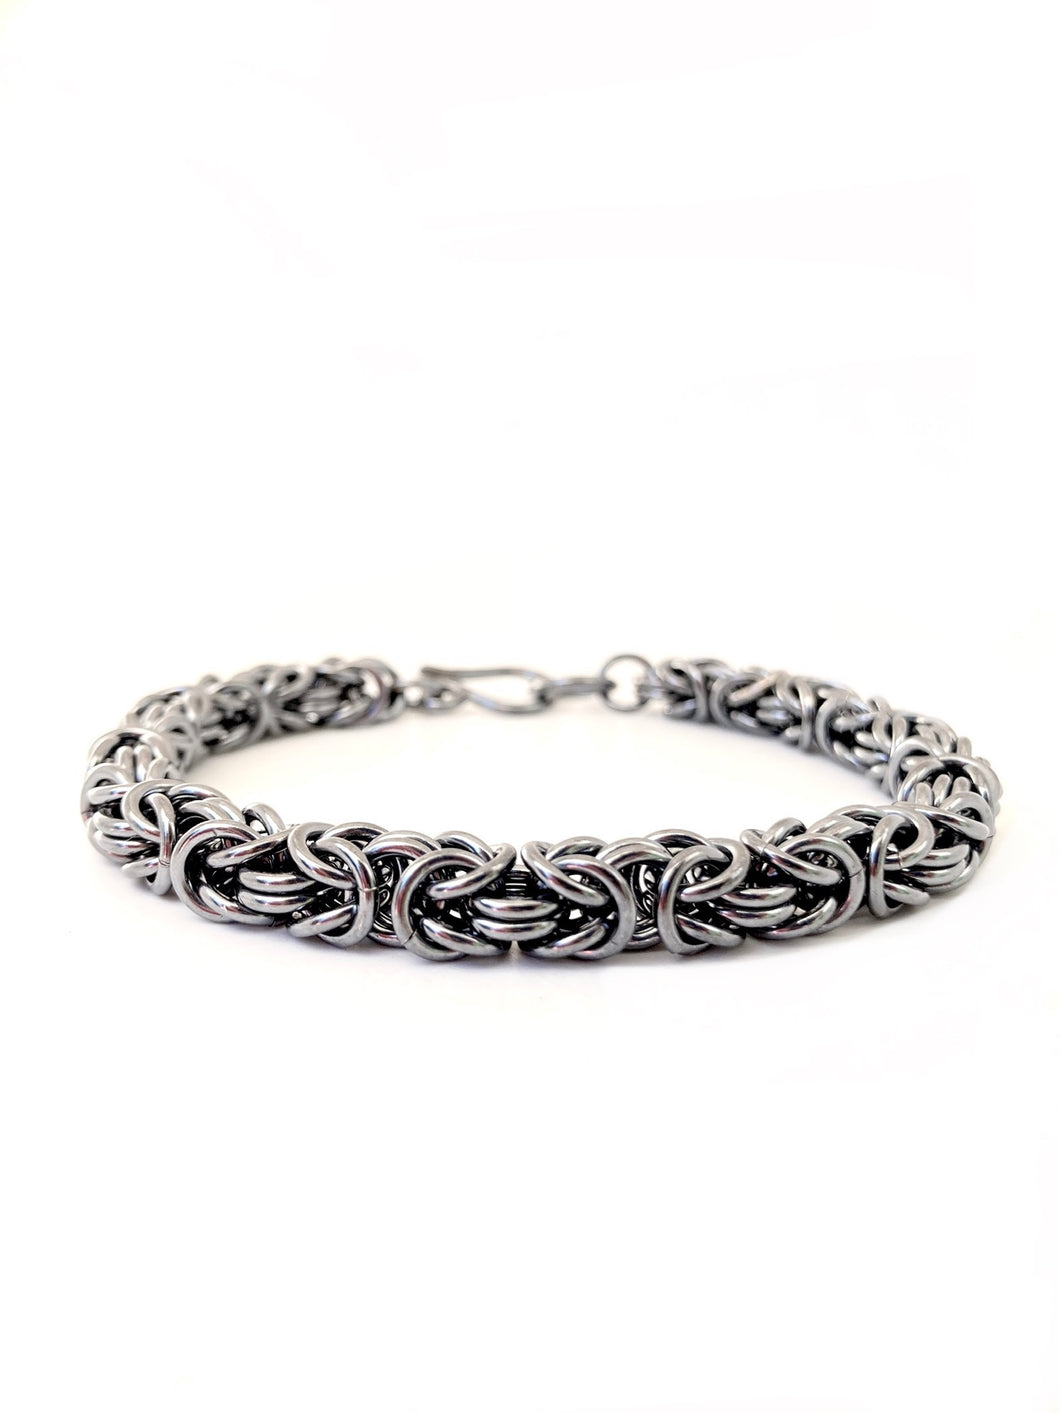 Handmade Oxidized Chunky Sterling Silver Byzantine Chainmaille Bracelet